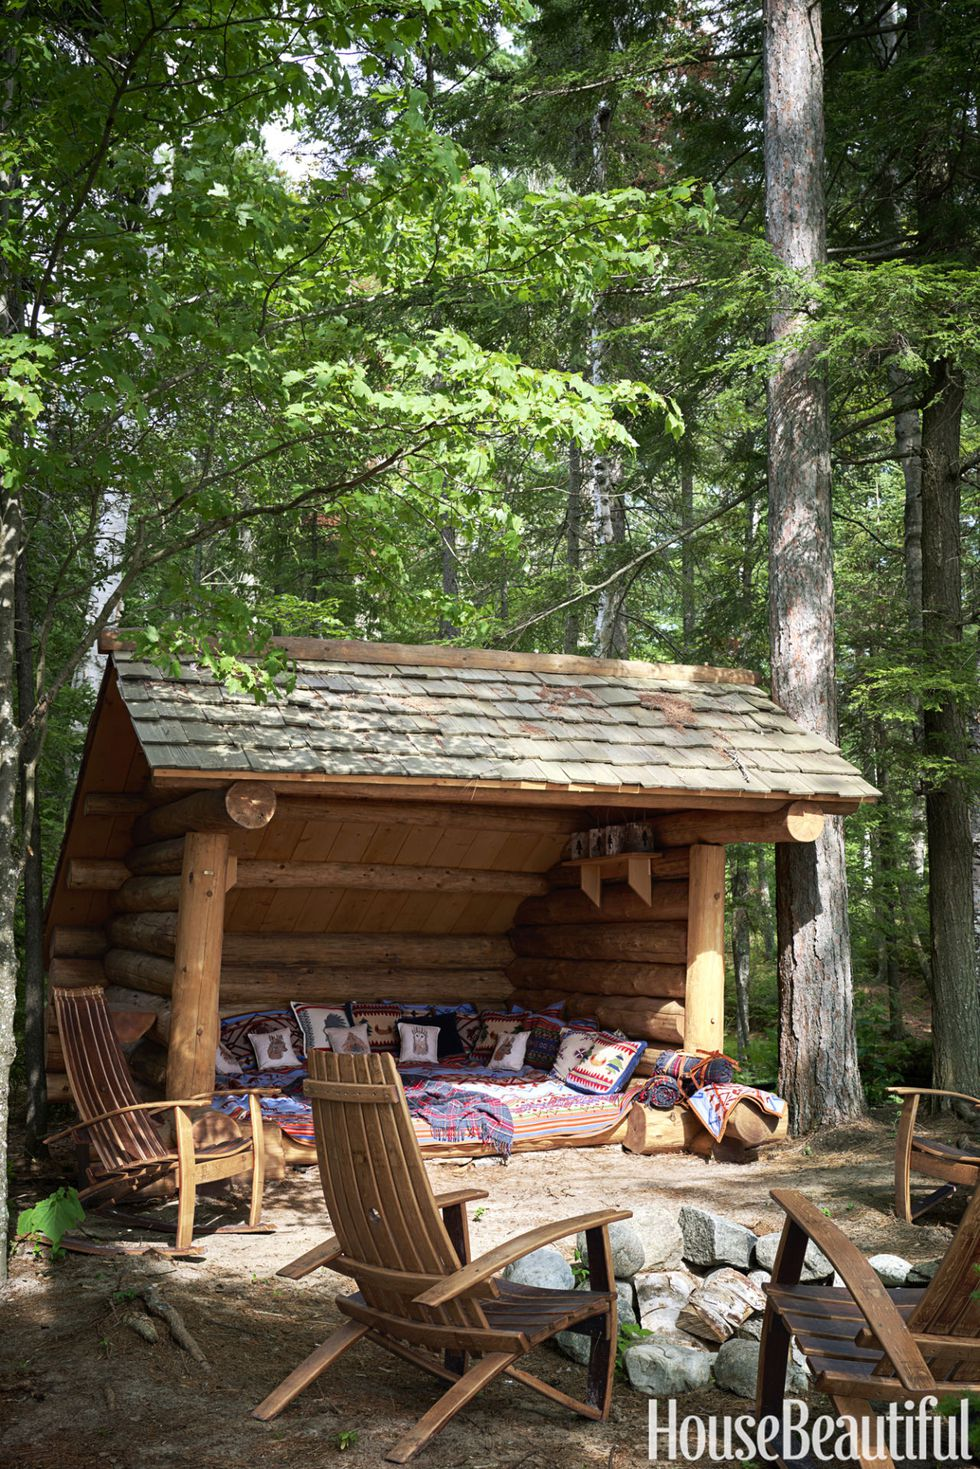 LEAN-TO GOALS